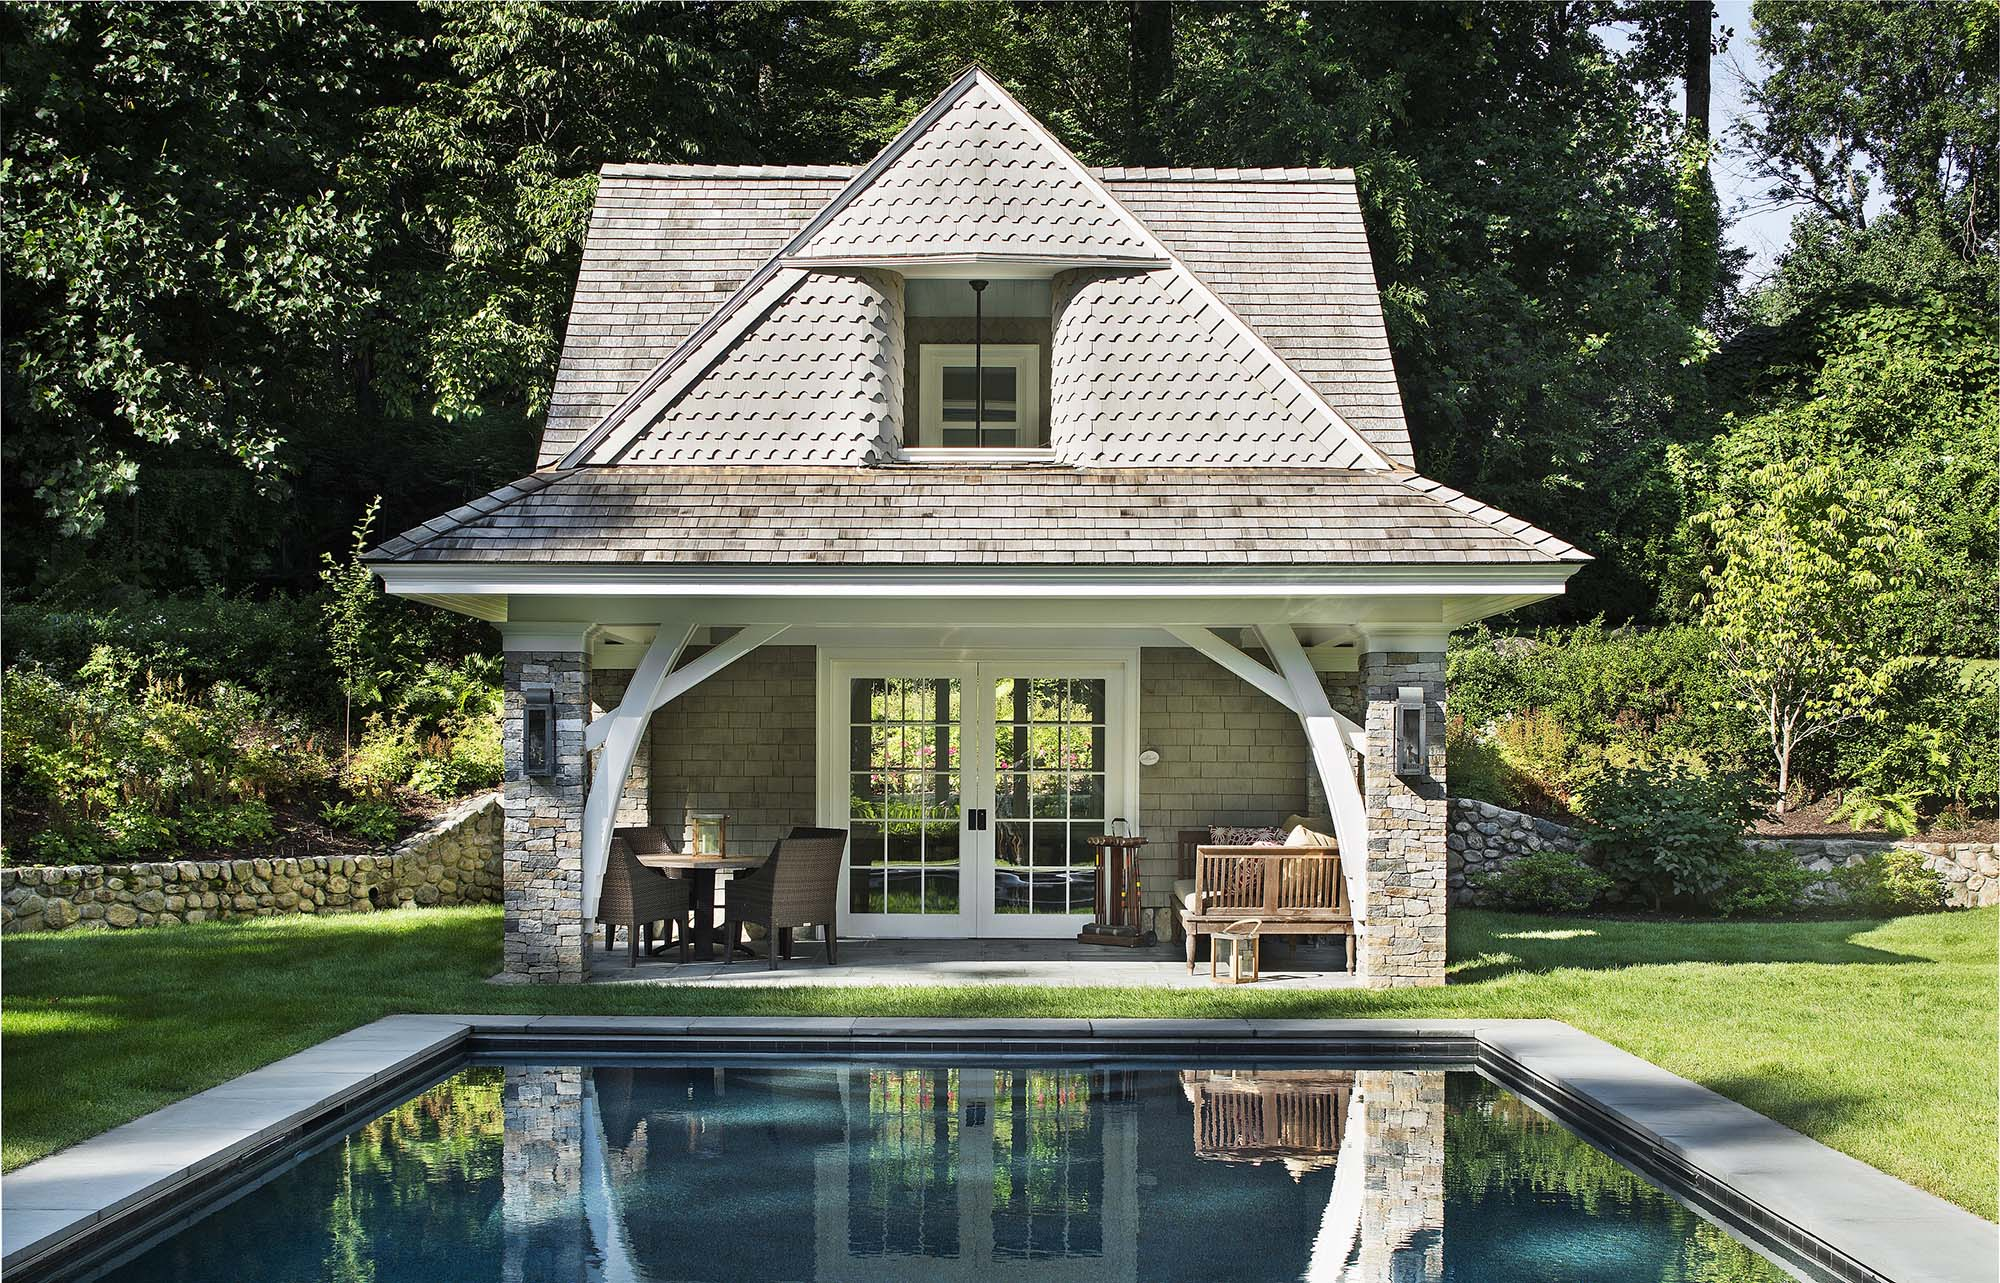 best poolhouse designs country poolhouse style - Gambrick